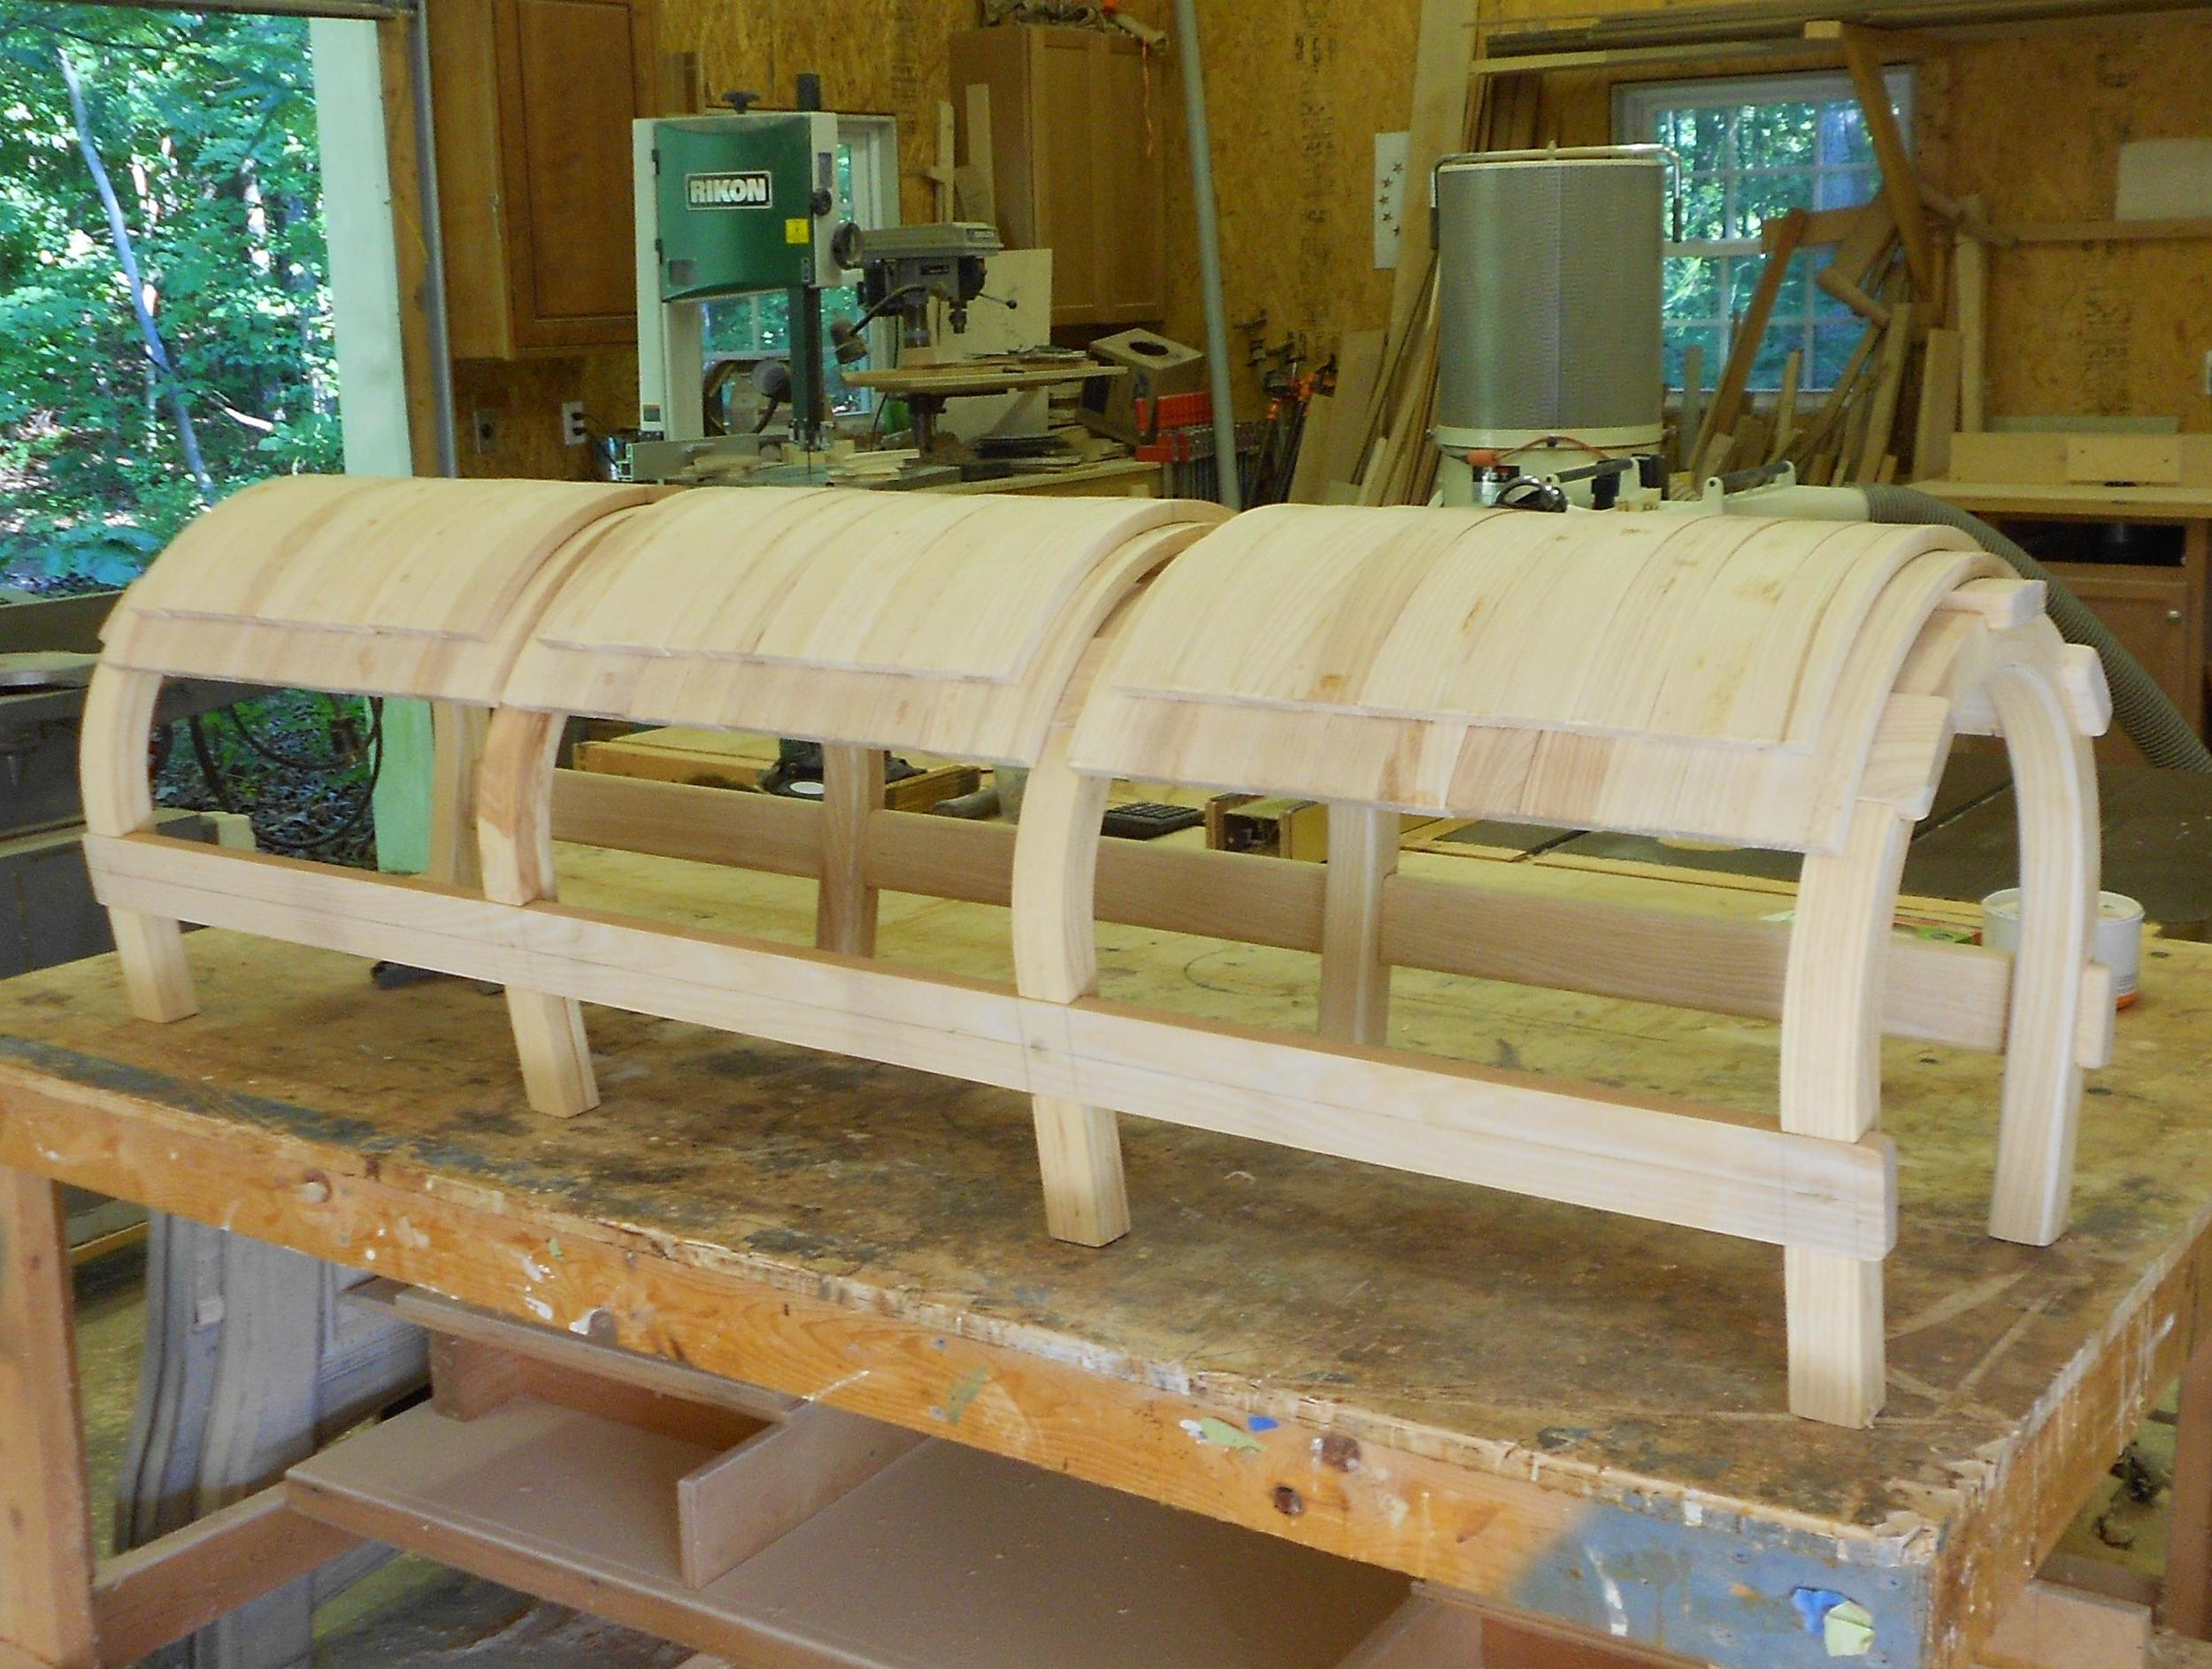 Brockport commission 16  horse shoe bench seat layout.jpg